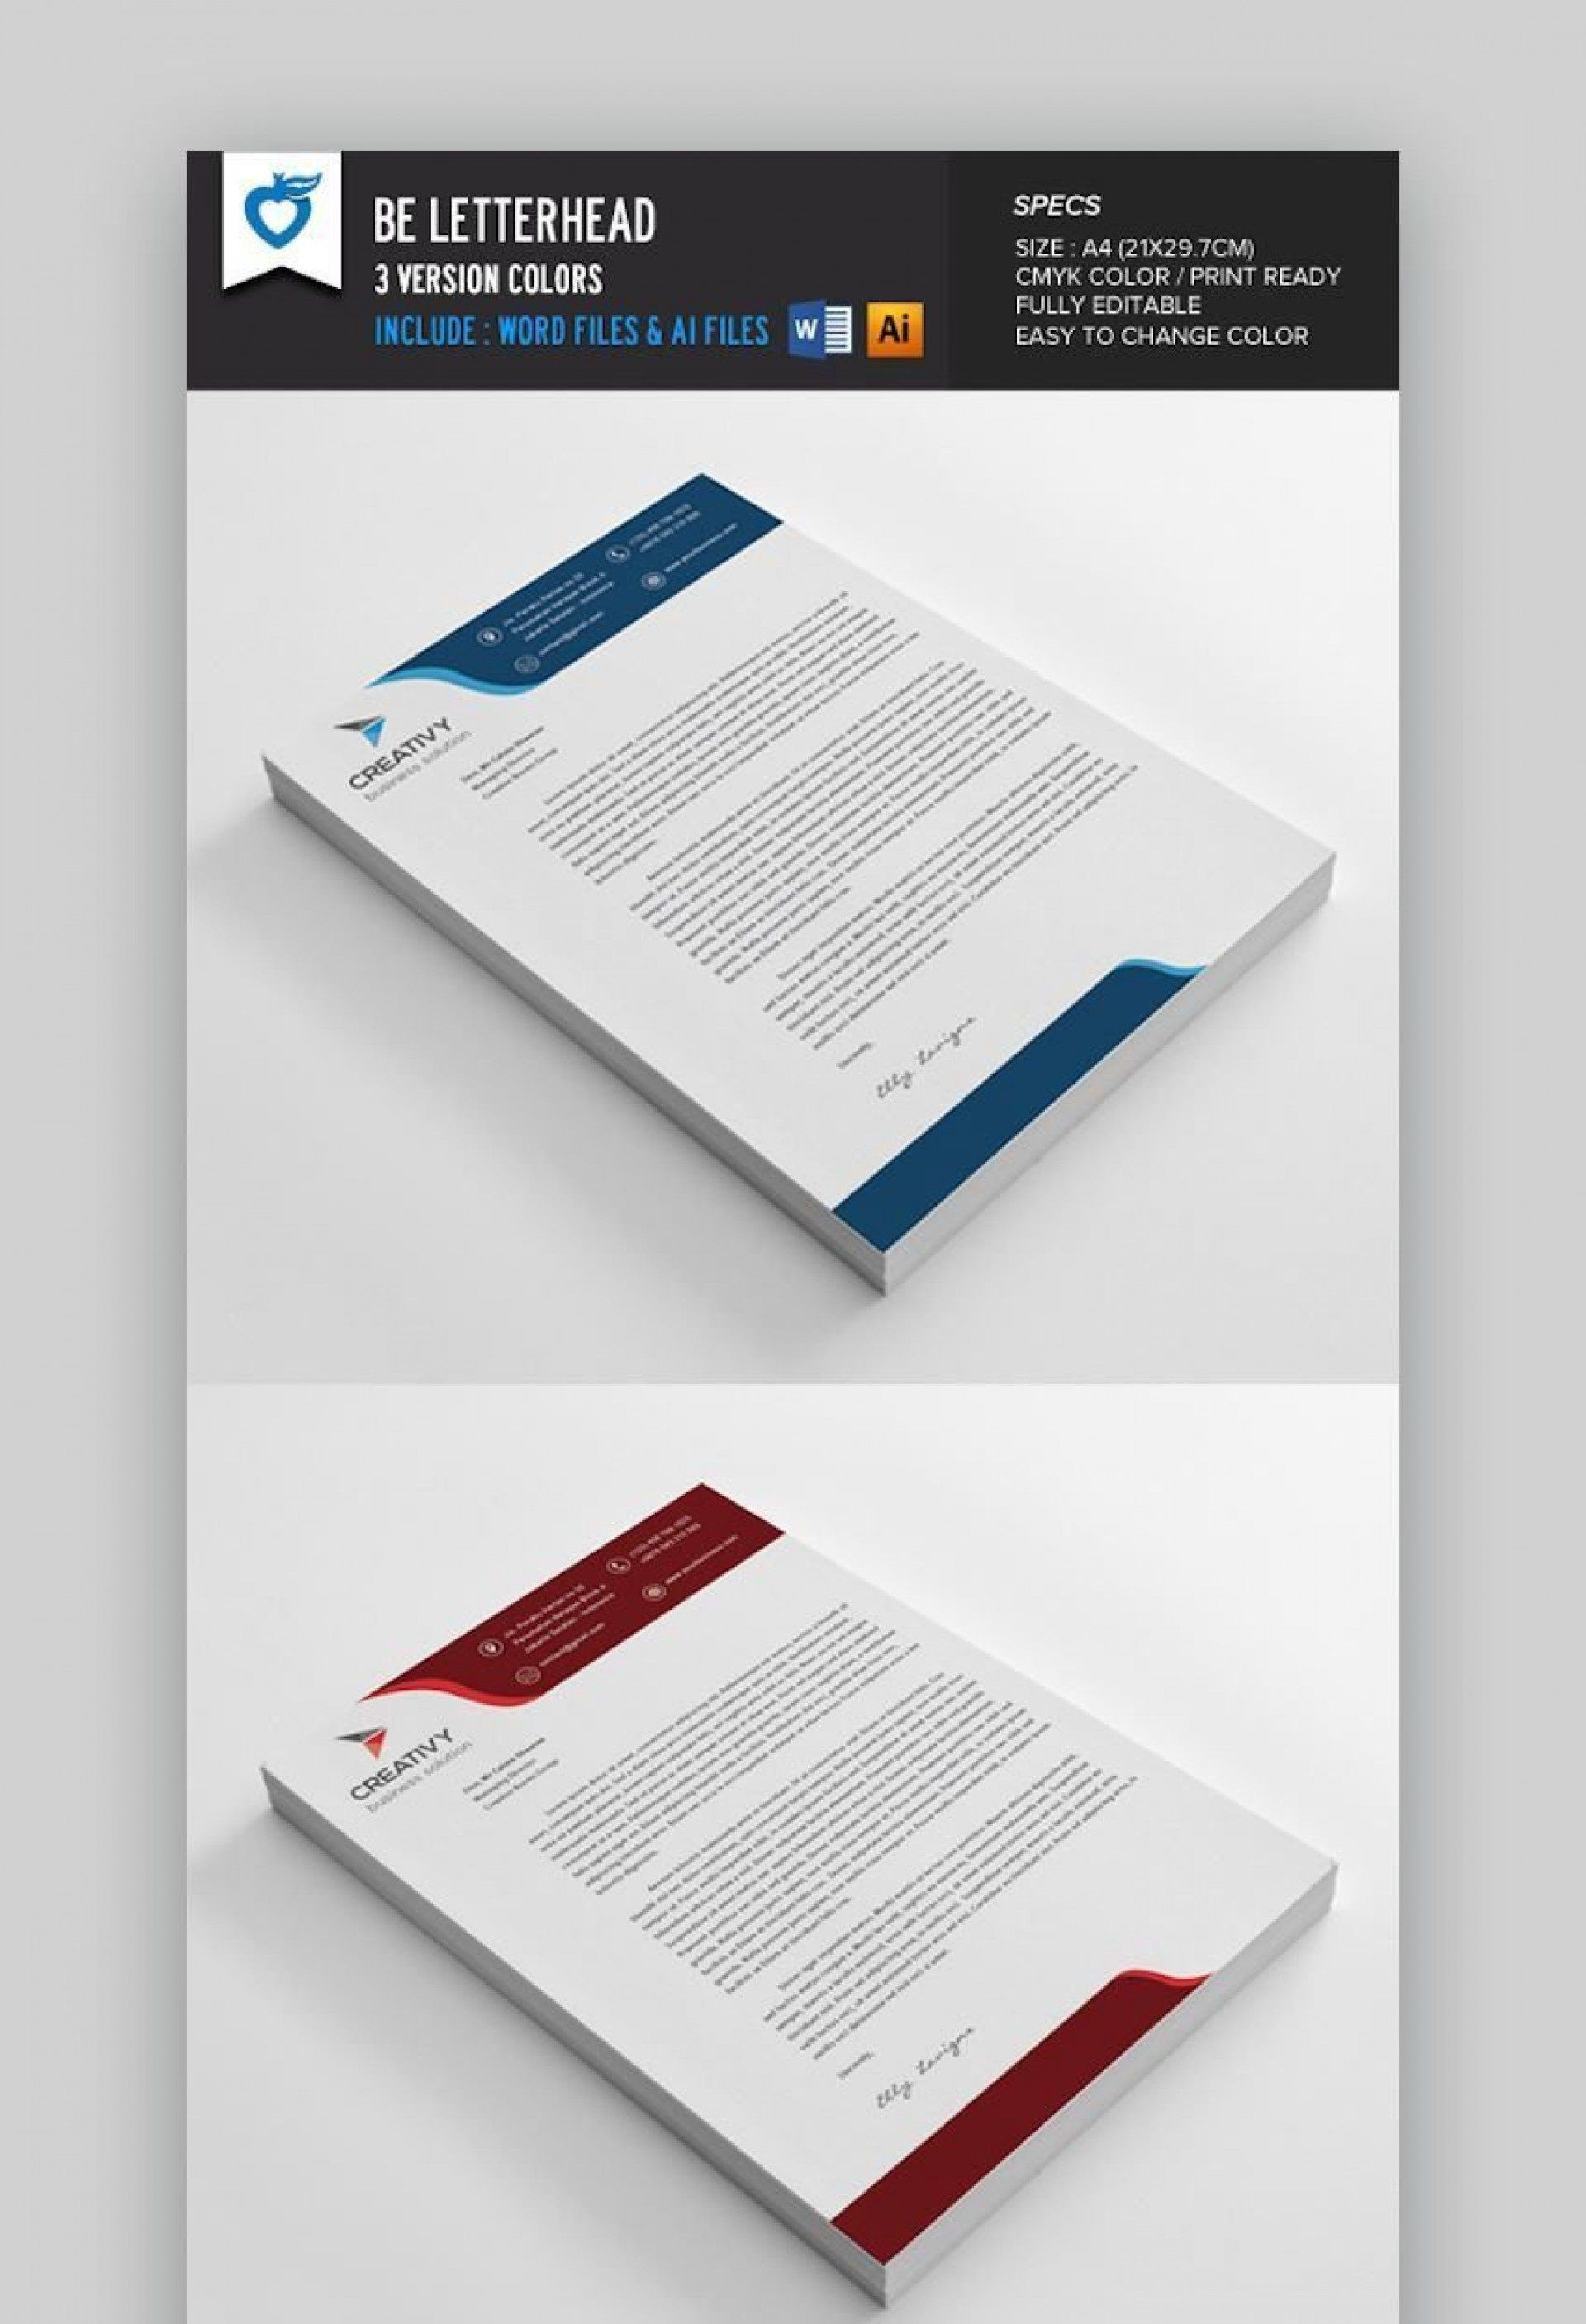 008 Excellent Letterhead Template Free Download Ai Picture  File1920